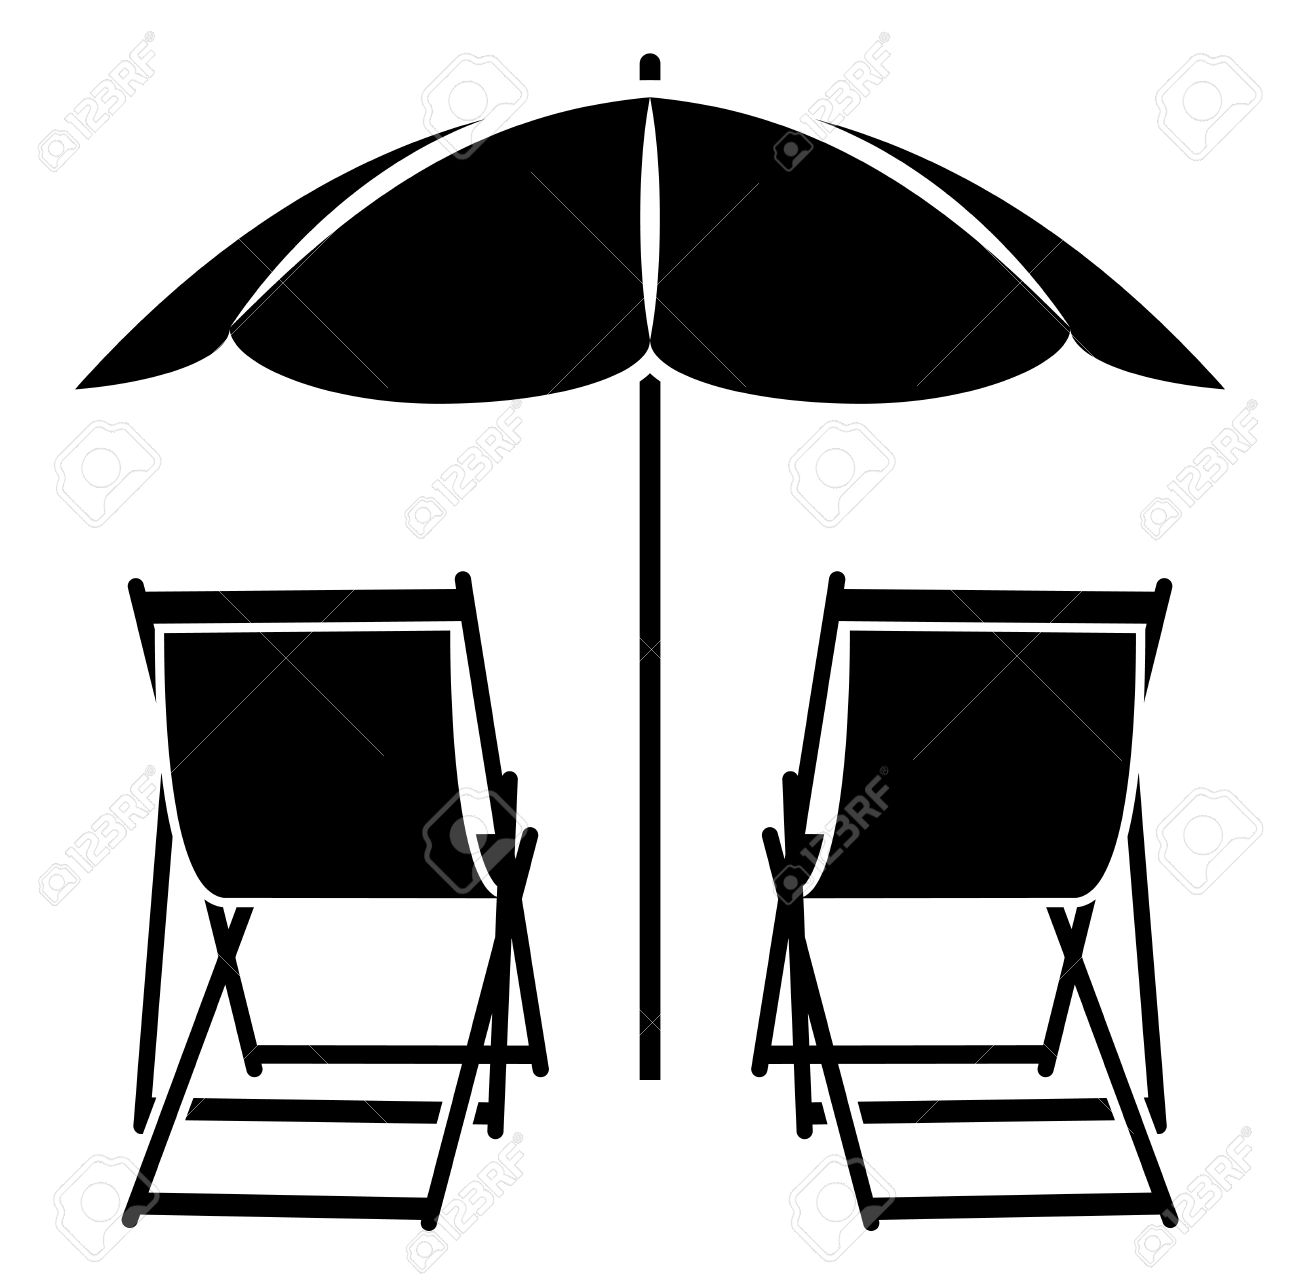 Chair beach umbrella and chair black and white - Vector Deck Chairs Under Beach Umbrella Isolated On White Background Stock Vector 46530057